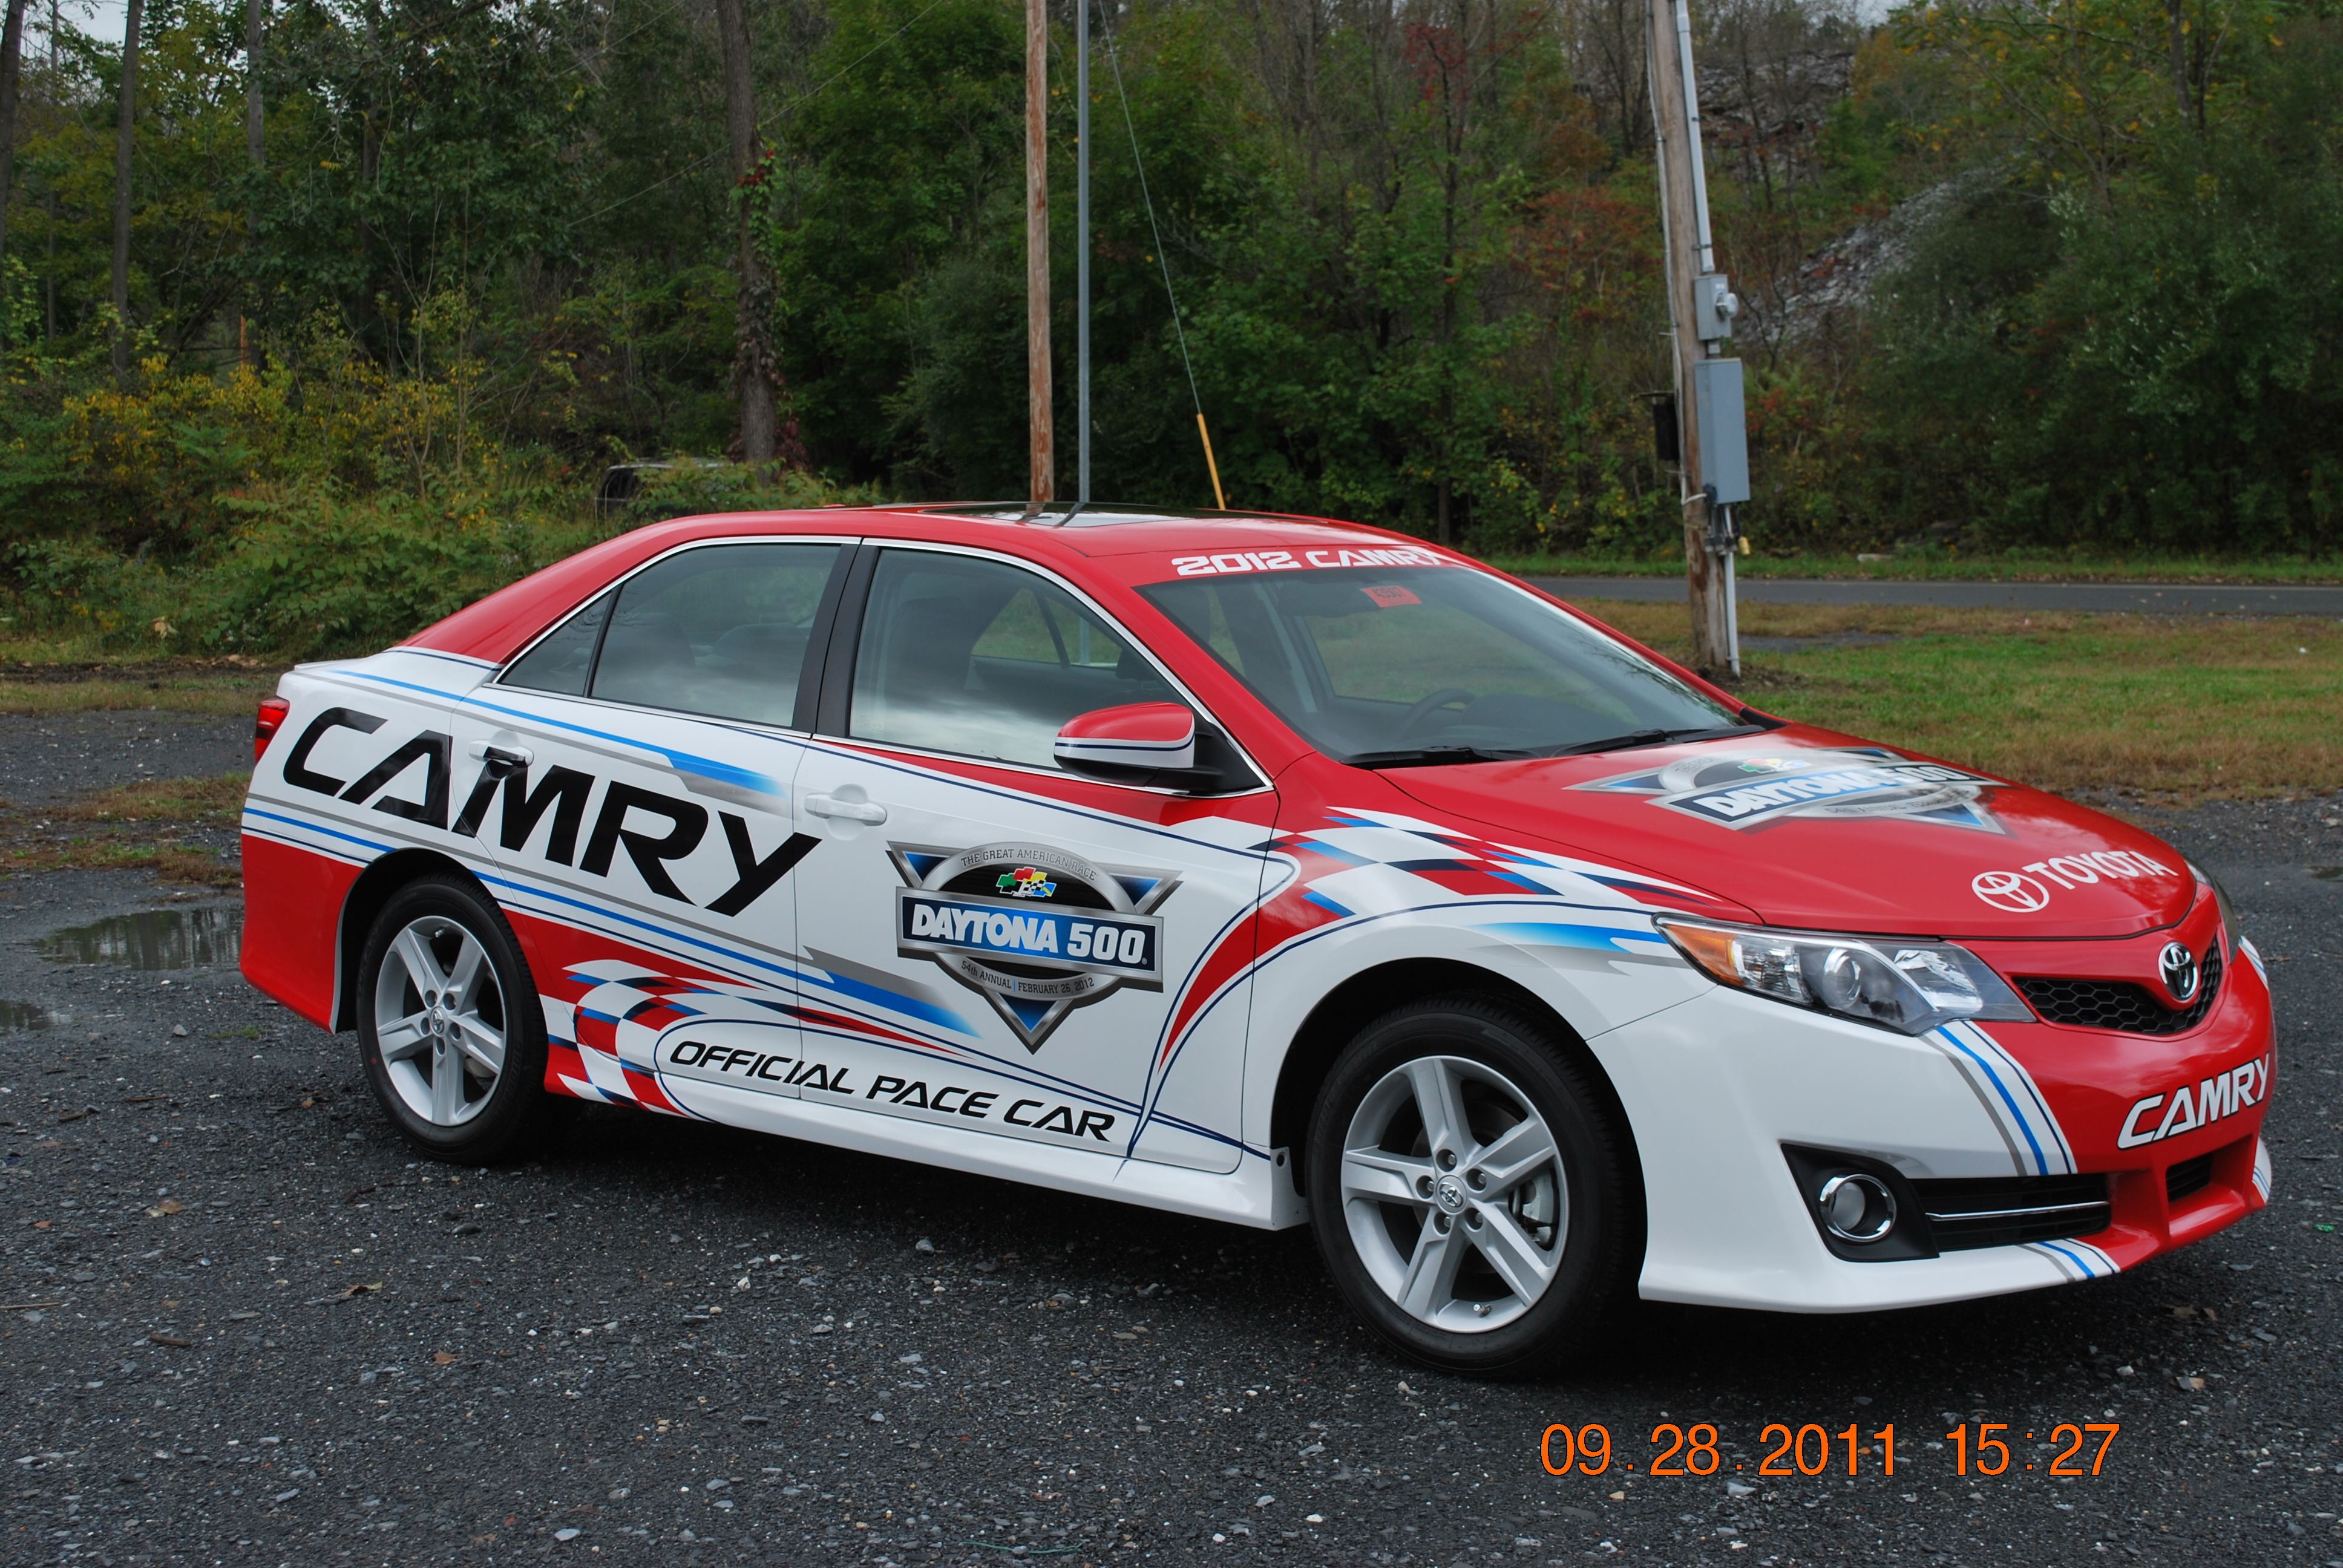 Toyota Scion Camry Pace Car Wrap In Scranton Idwraps